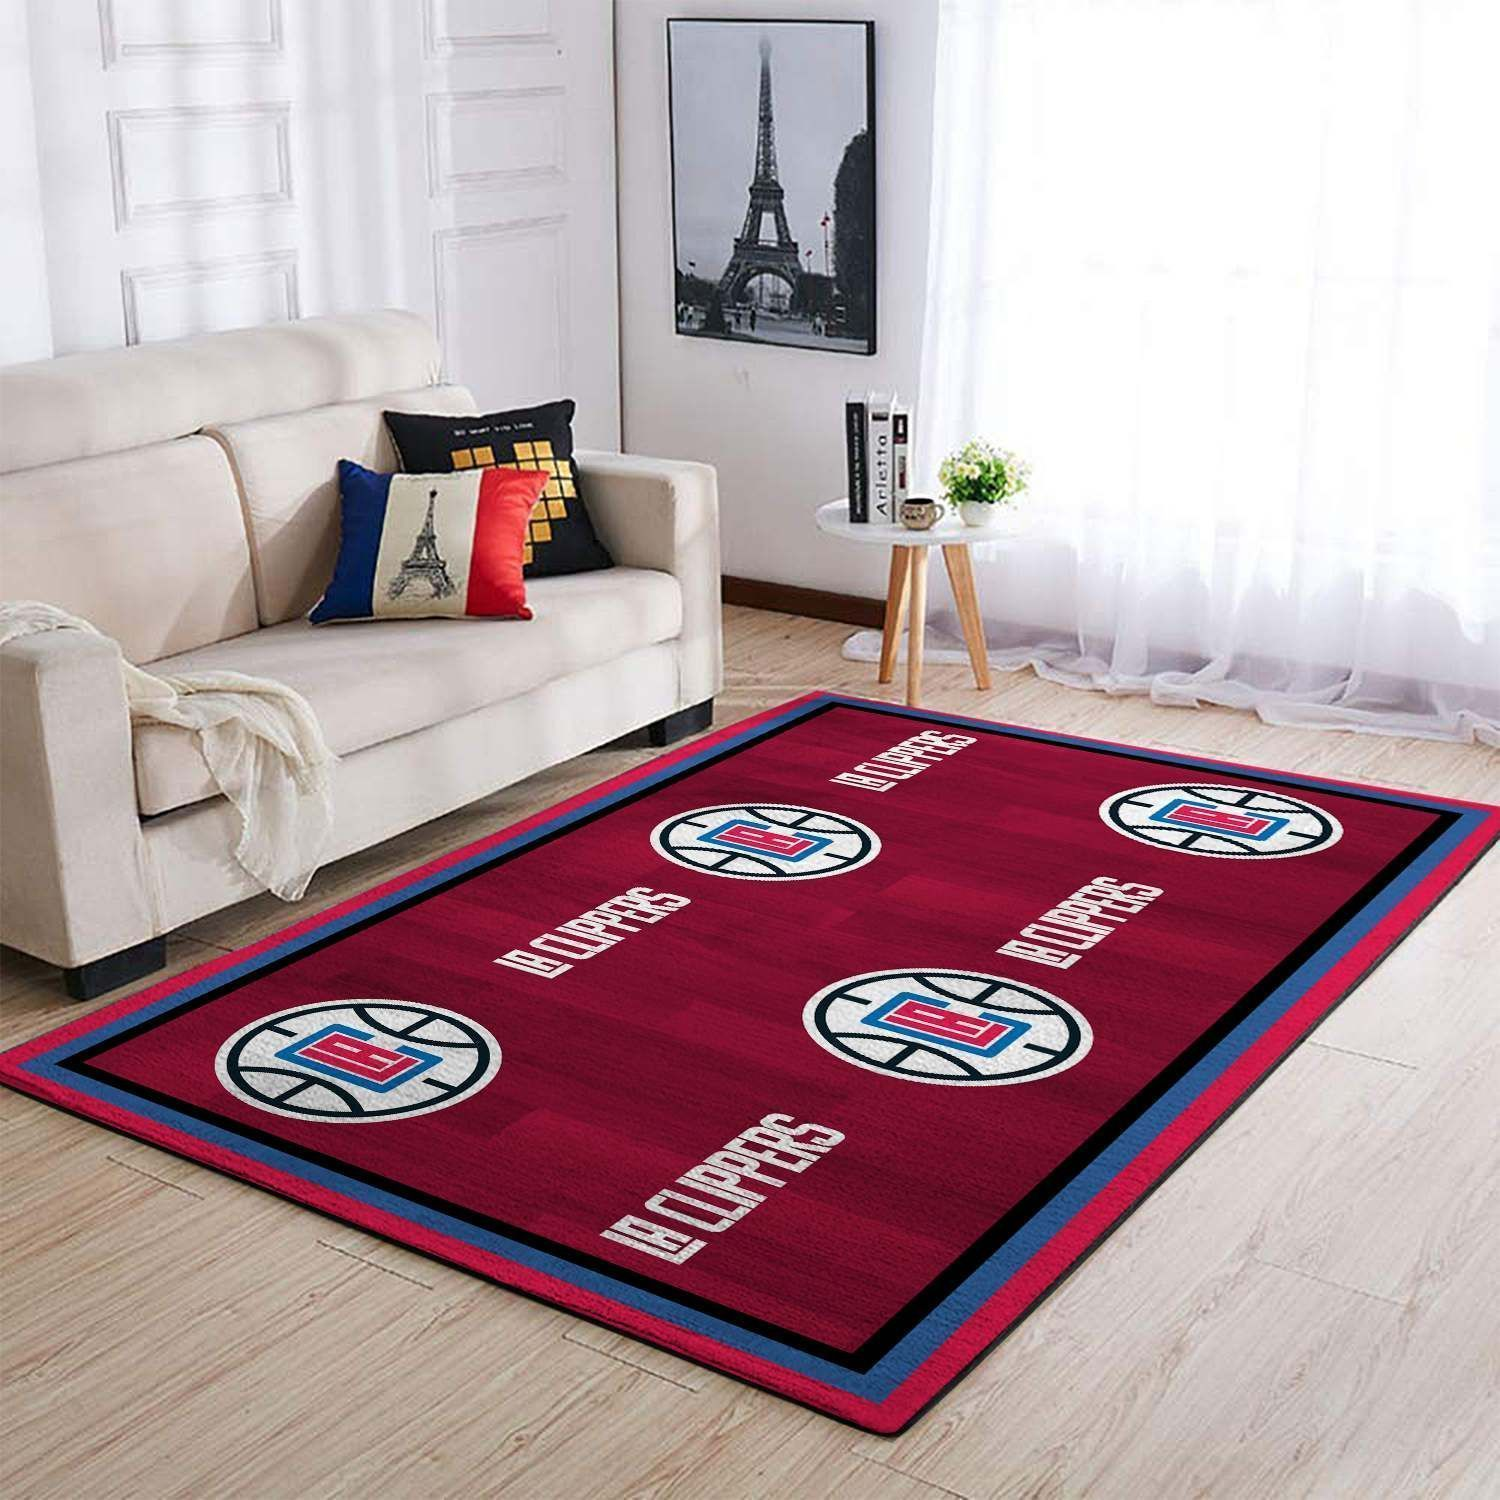 Amazon Los Angeles Clippers Living Room Area No3576 Rug